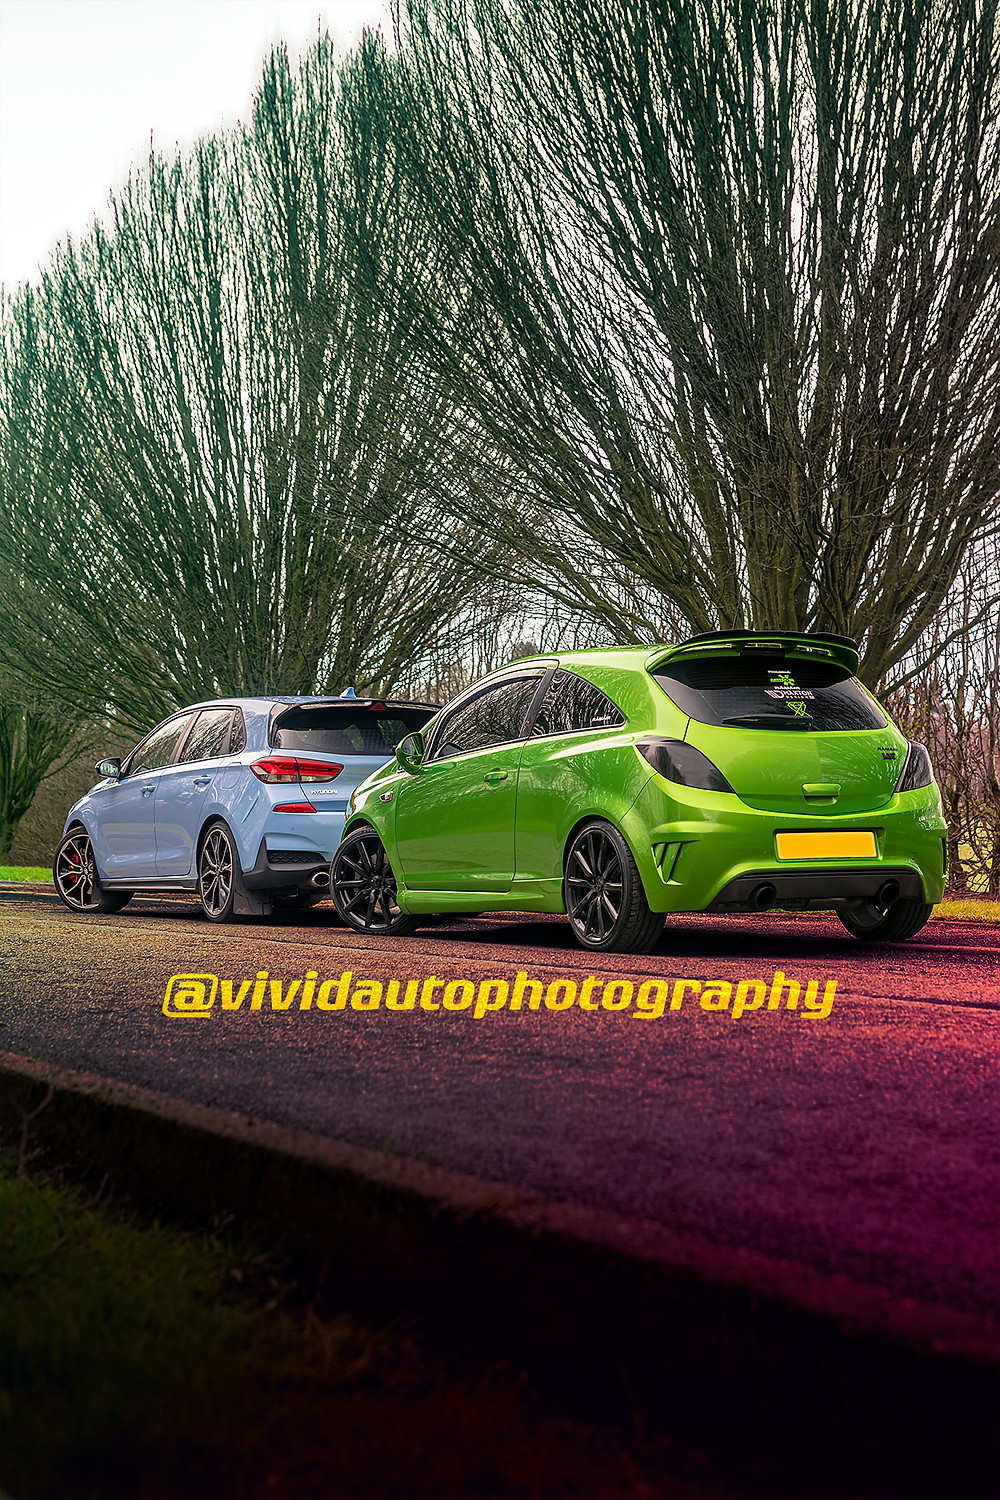 Vauxhall Corsa VXR Nuburgring Edition and Hyundai i30N Performance rear three quarters Crewe Hall